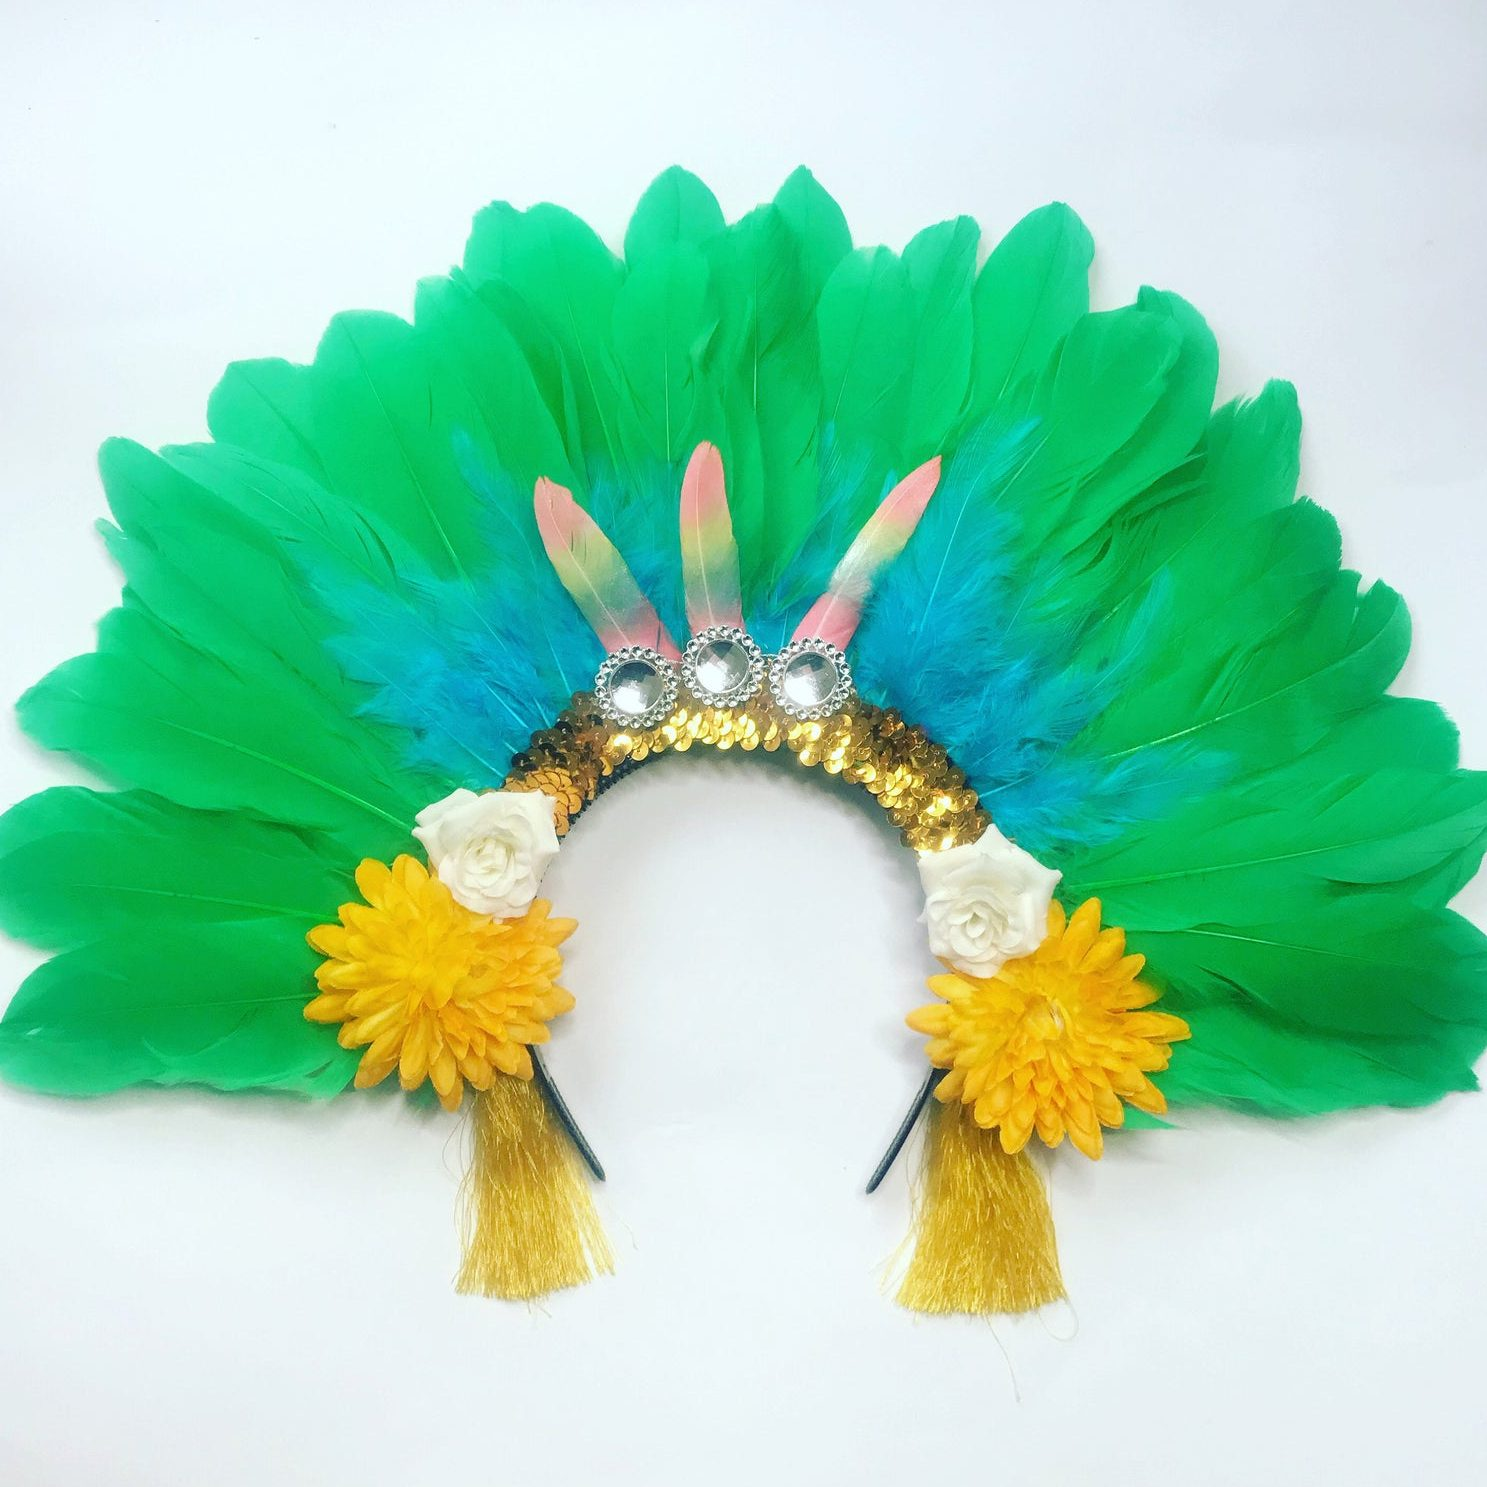 Festival headpiece